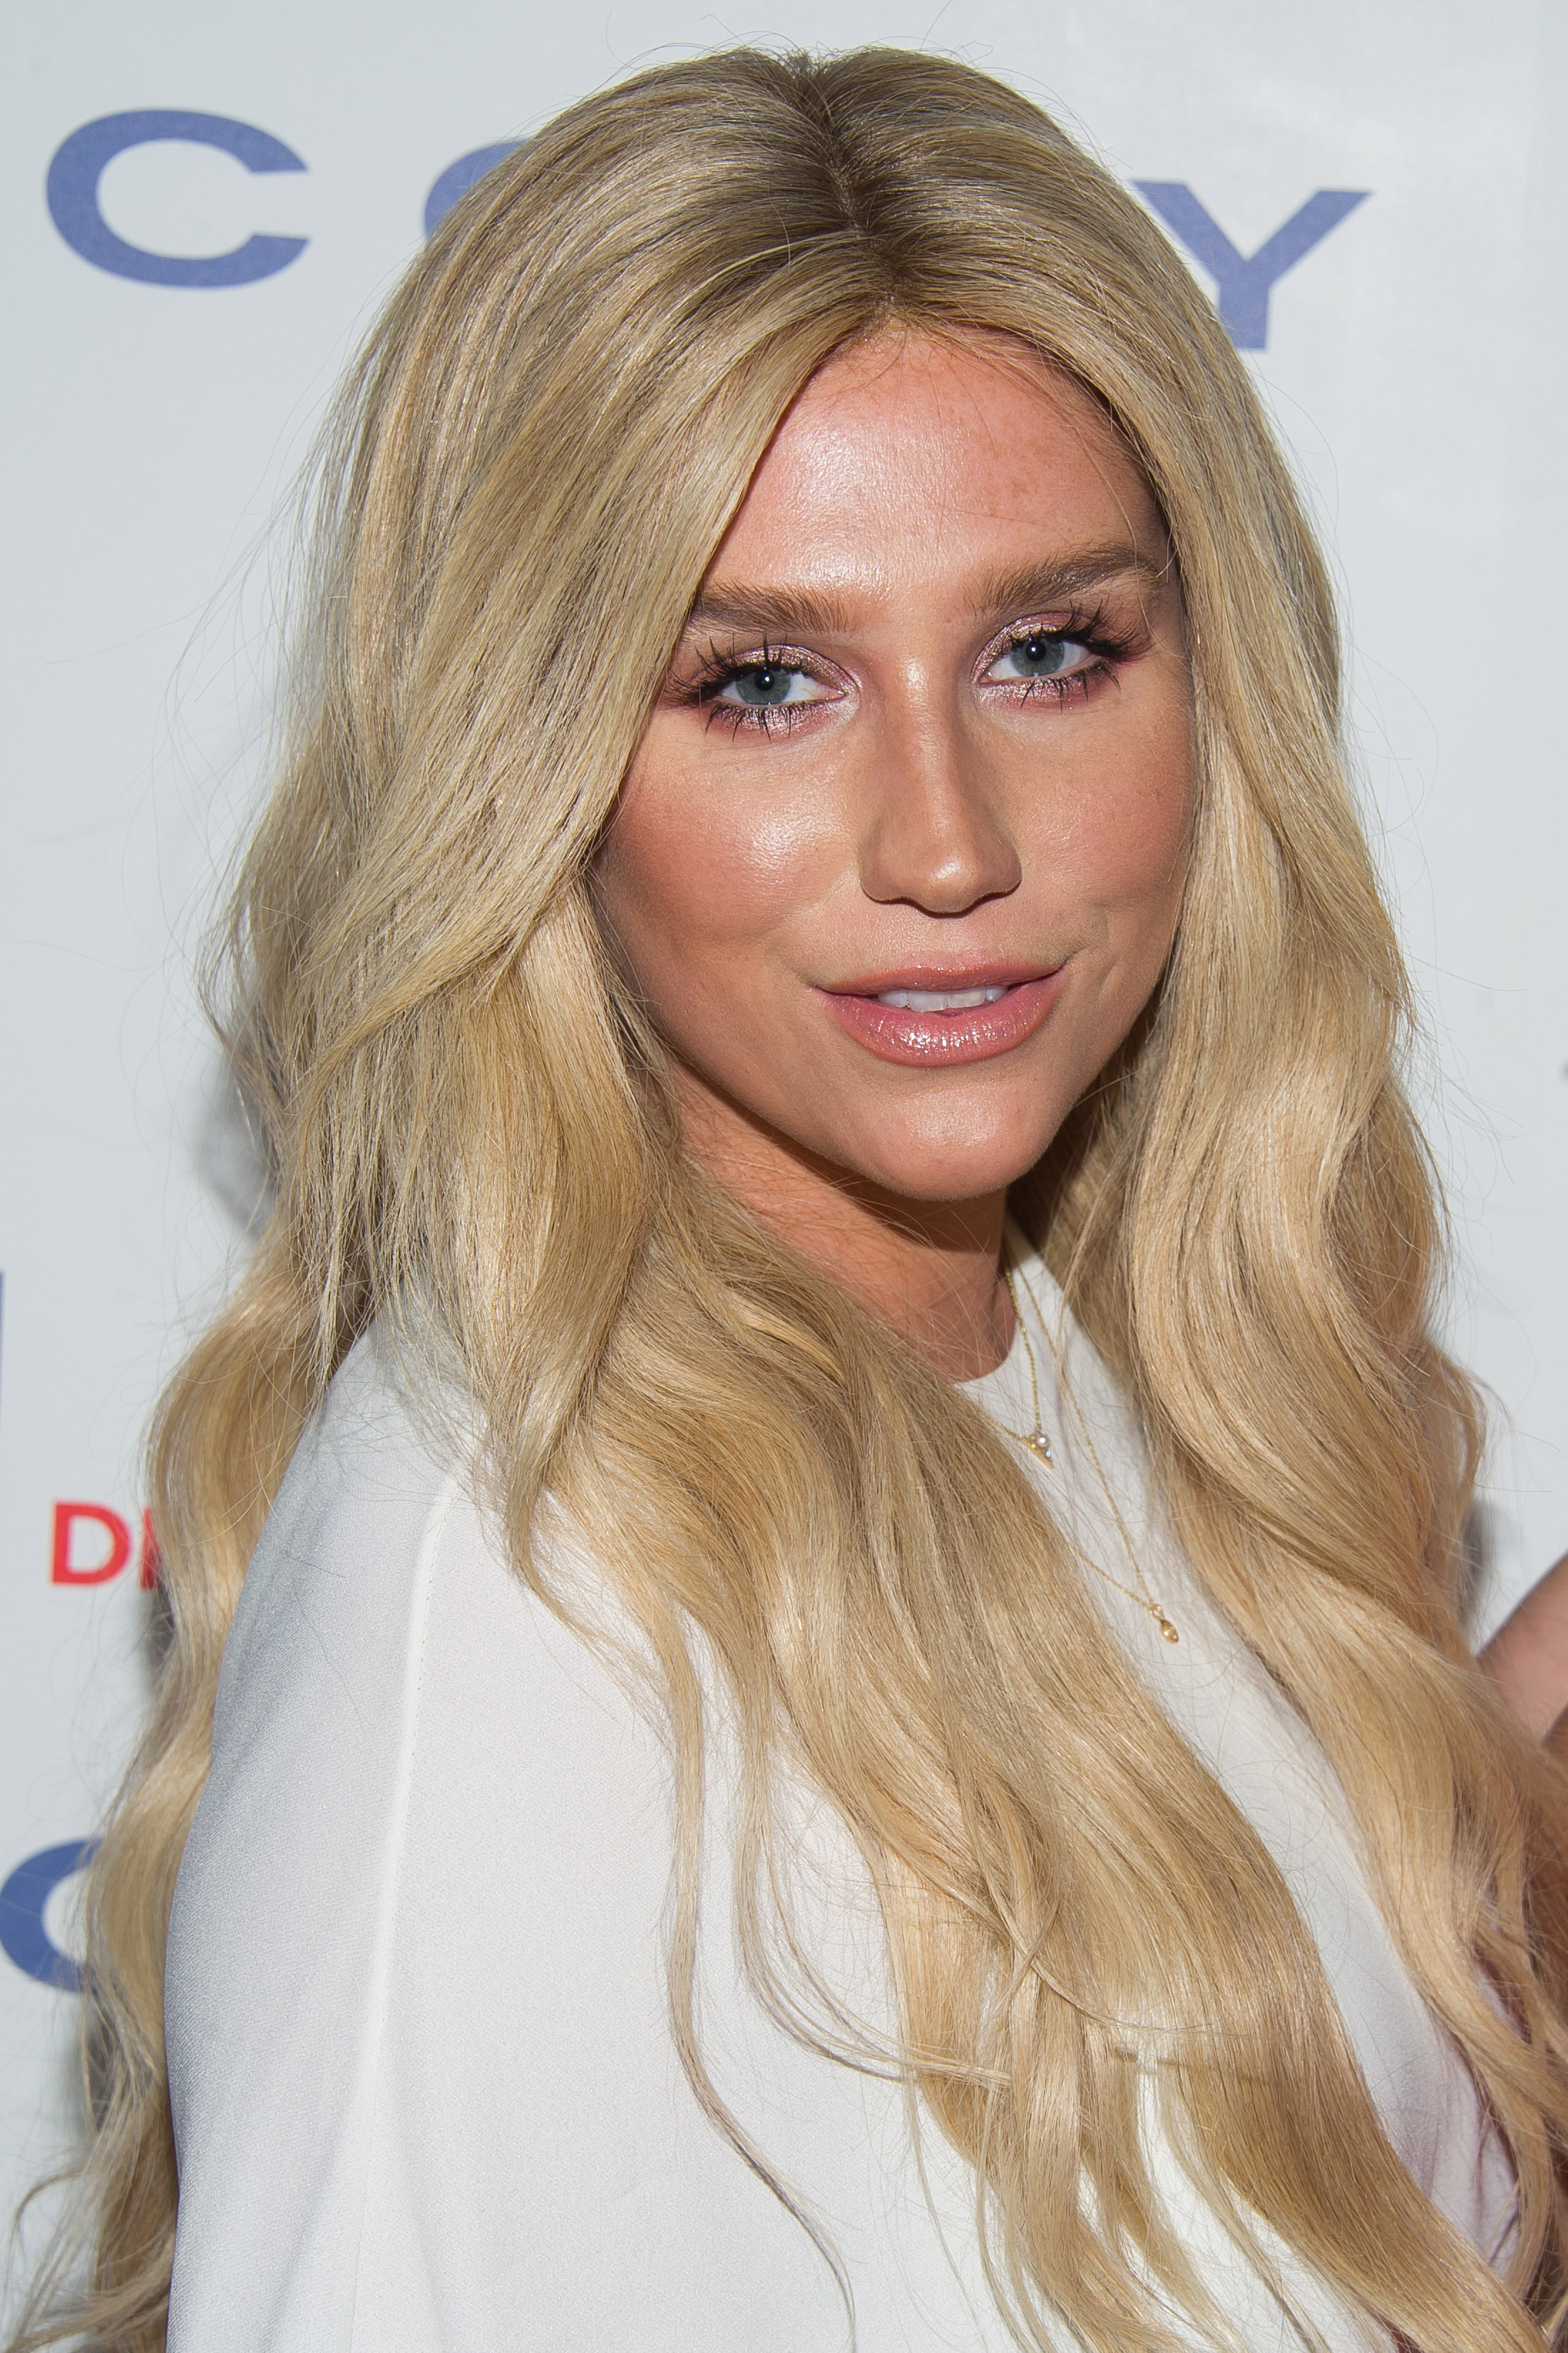 Kesha attends the 2015 Delete Blood Cancer Gala at Cipriani Wall Street in New York City on Apr. 16, 2015.